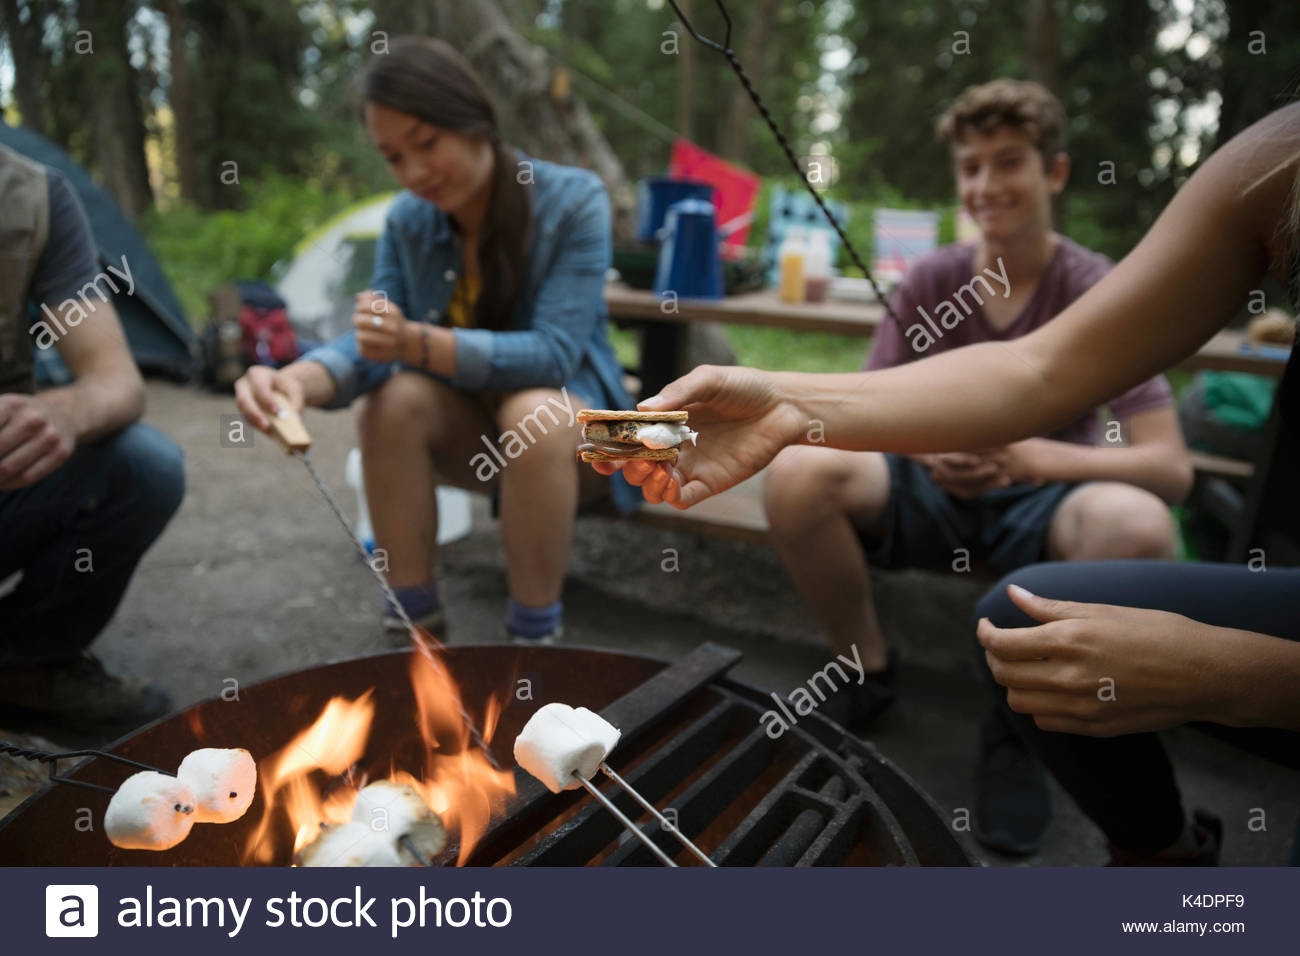 Teenage outdoor school students toasting marshmallows, making smores at campsite campfire - Stock Image